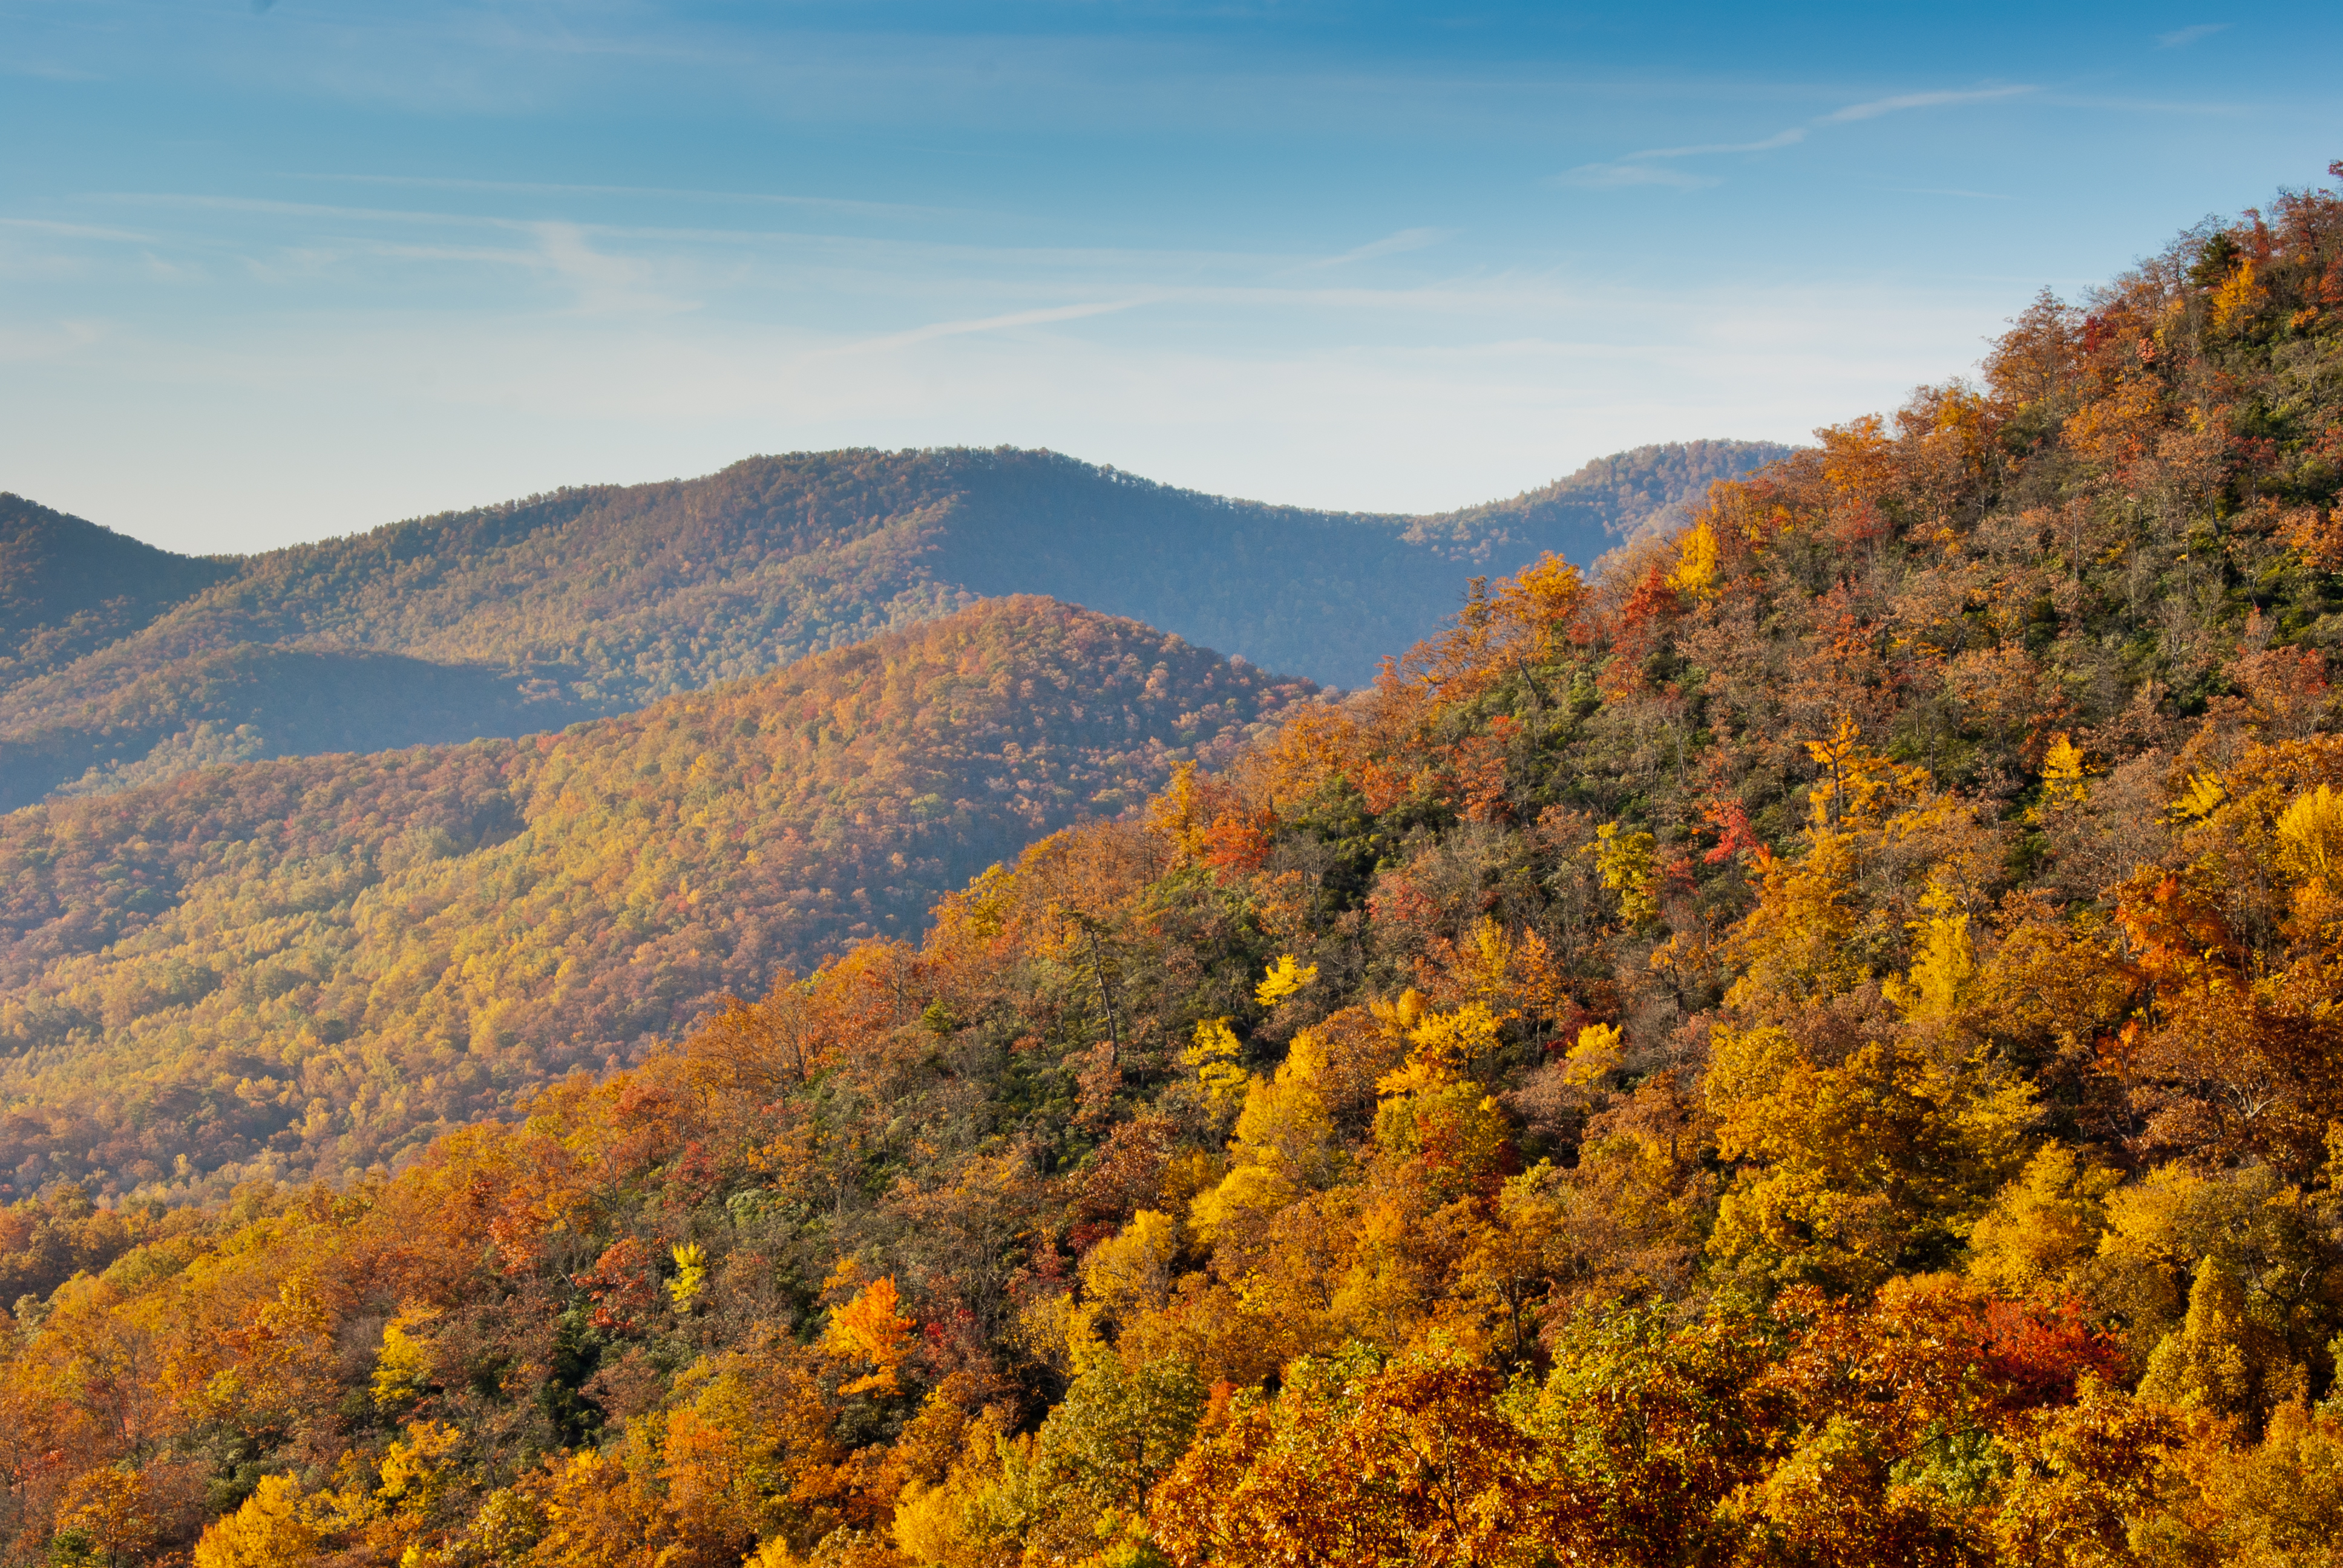 Fall_colors_from_the_Blue_Ridge_Parkway_just_south_of_Ashville